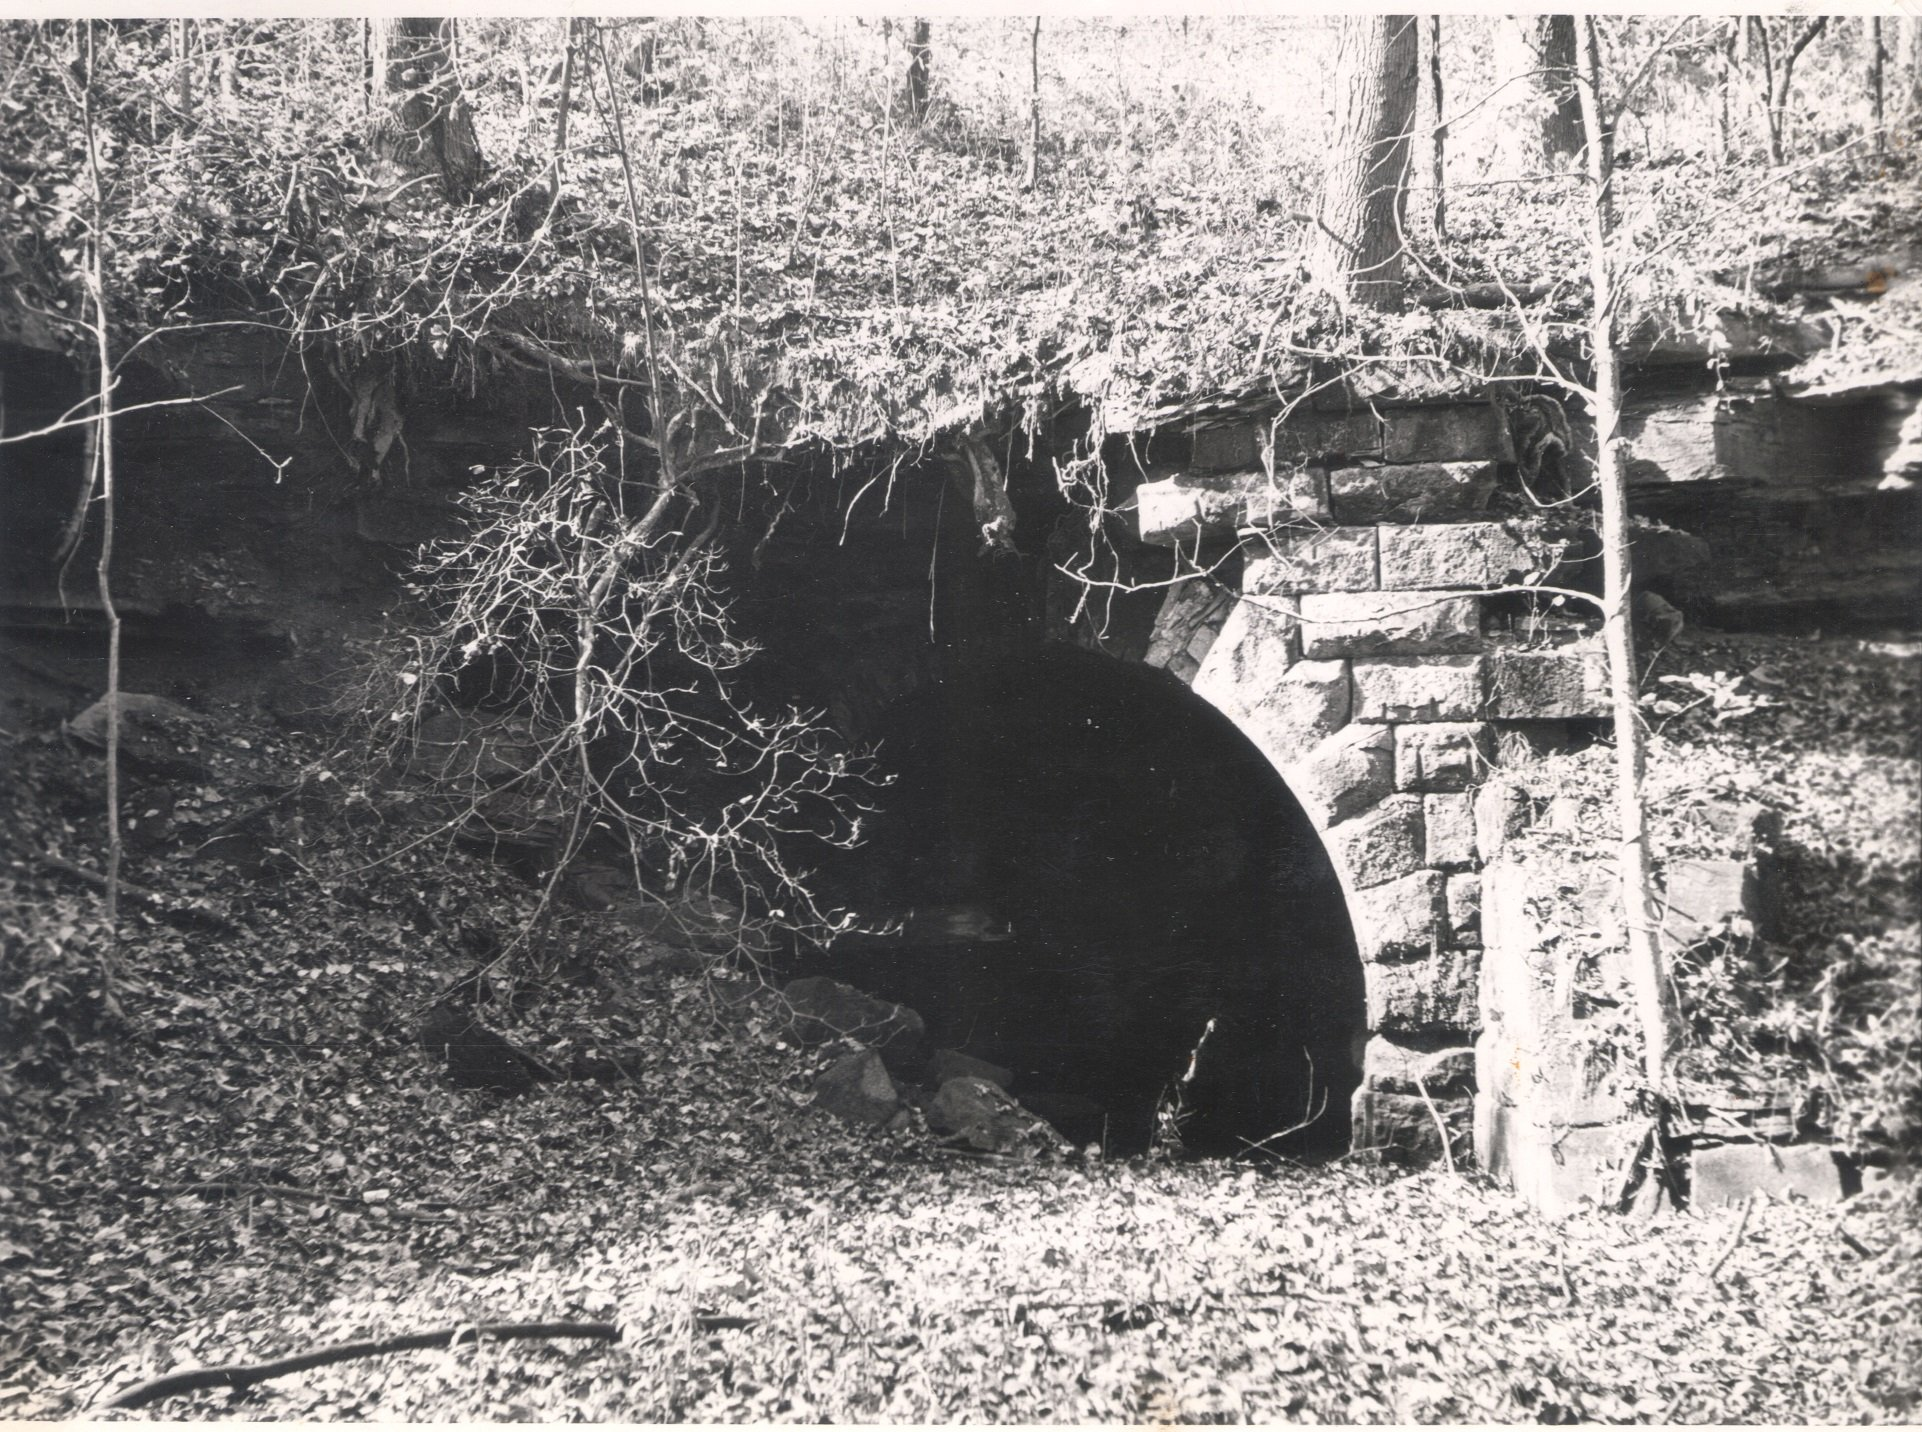 Pilcher Tunnel opening, circa 1950. Courtesy of the Southeast Ohio History Center.